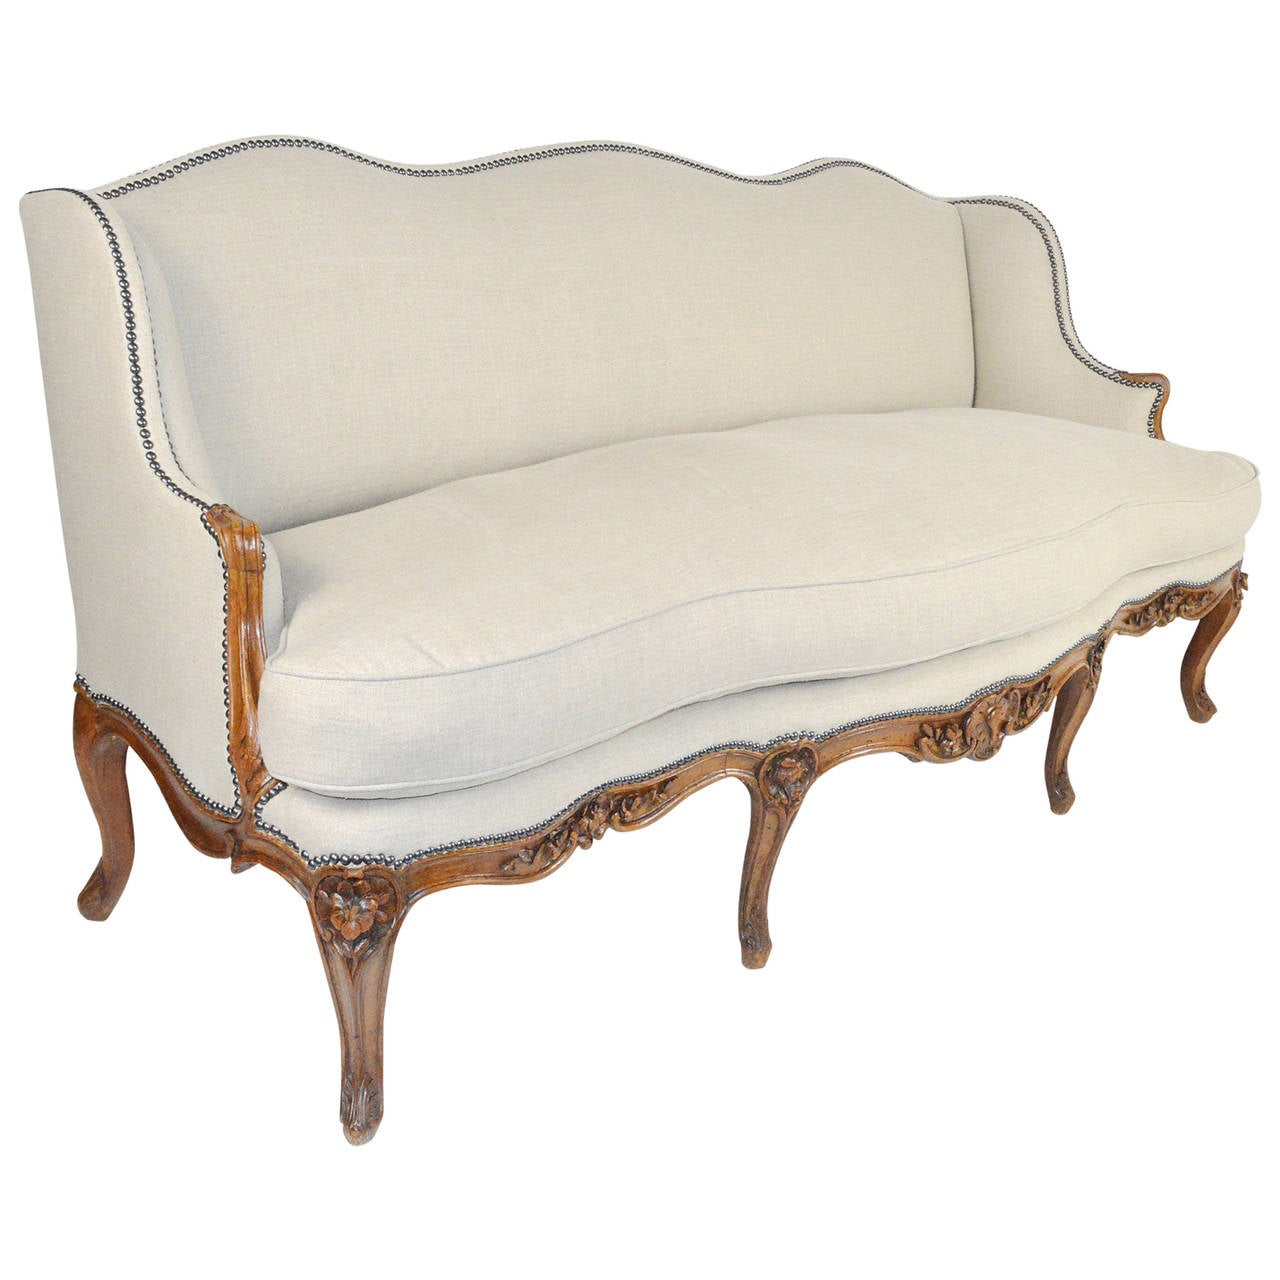 French louis xv style serpentine sofa canape at 1stdibs for Louis xv canape sofa